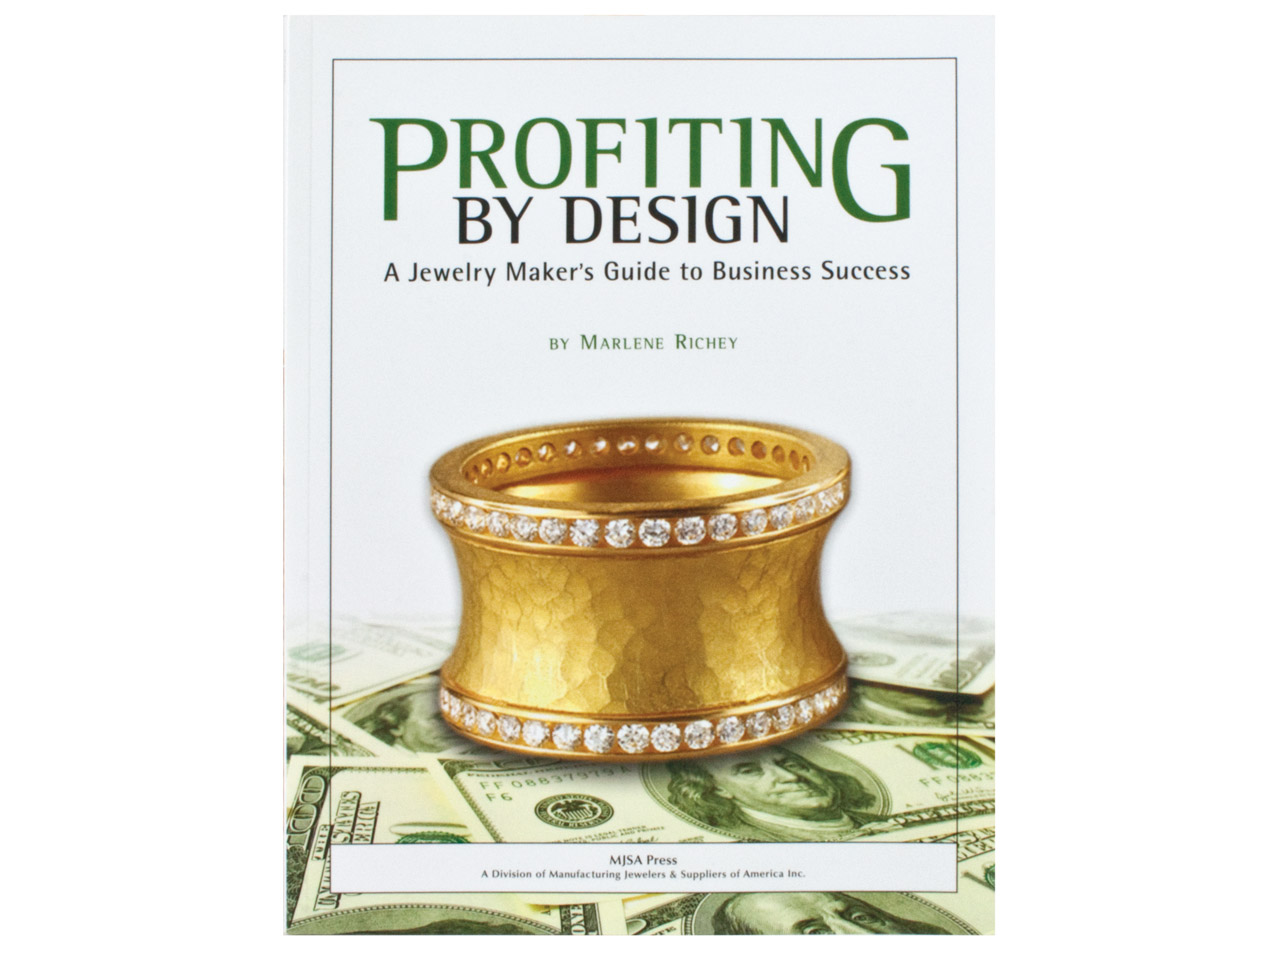 Profiting By Design, A Jewellery   Maker's Guide To Business Success  By Marlene Richey